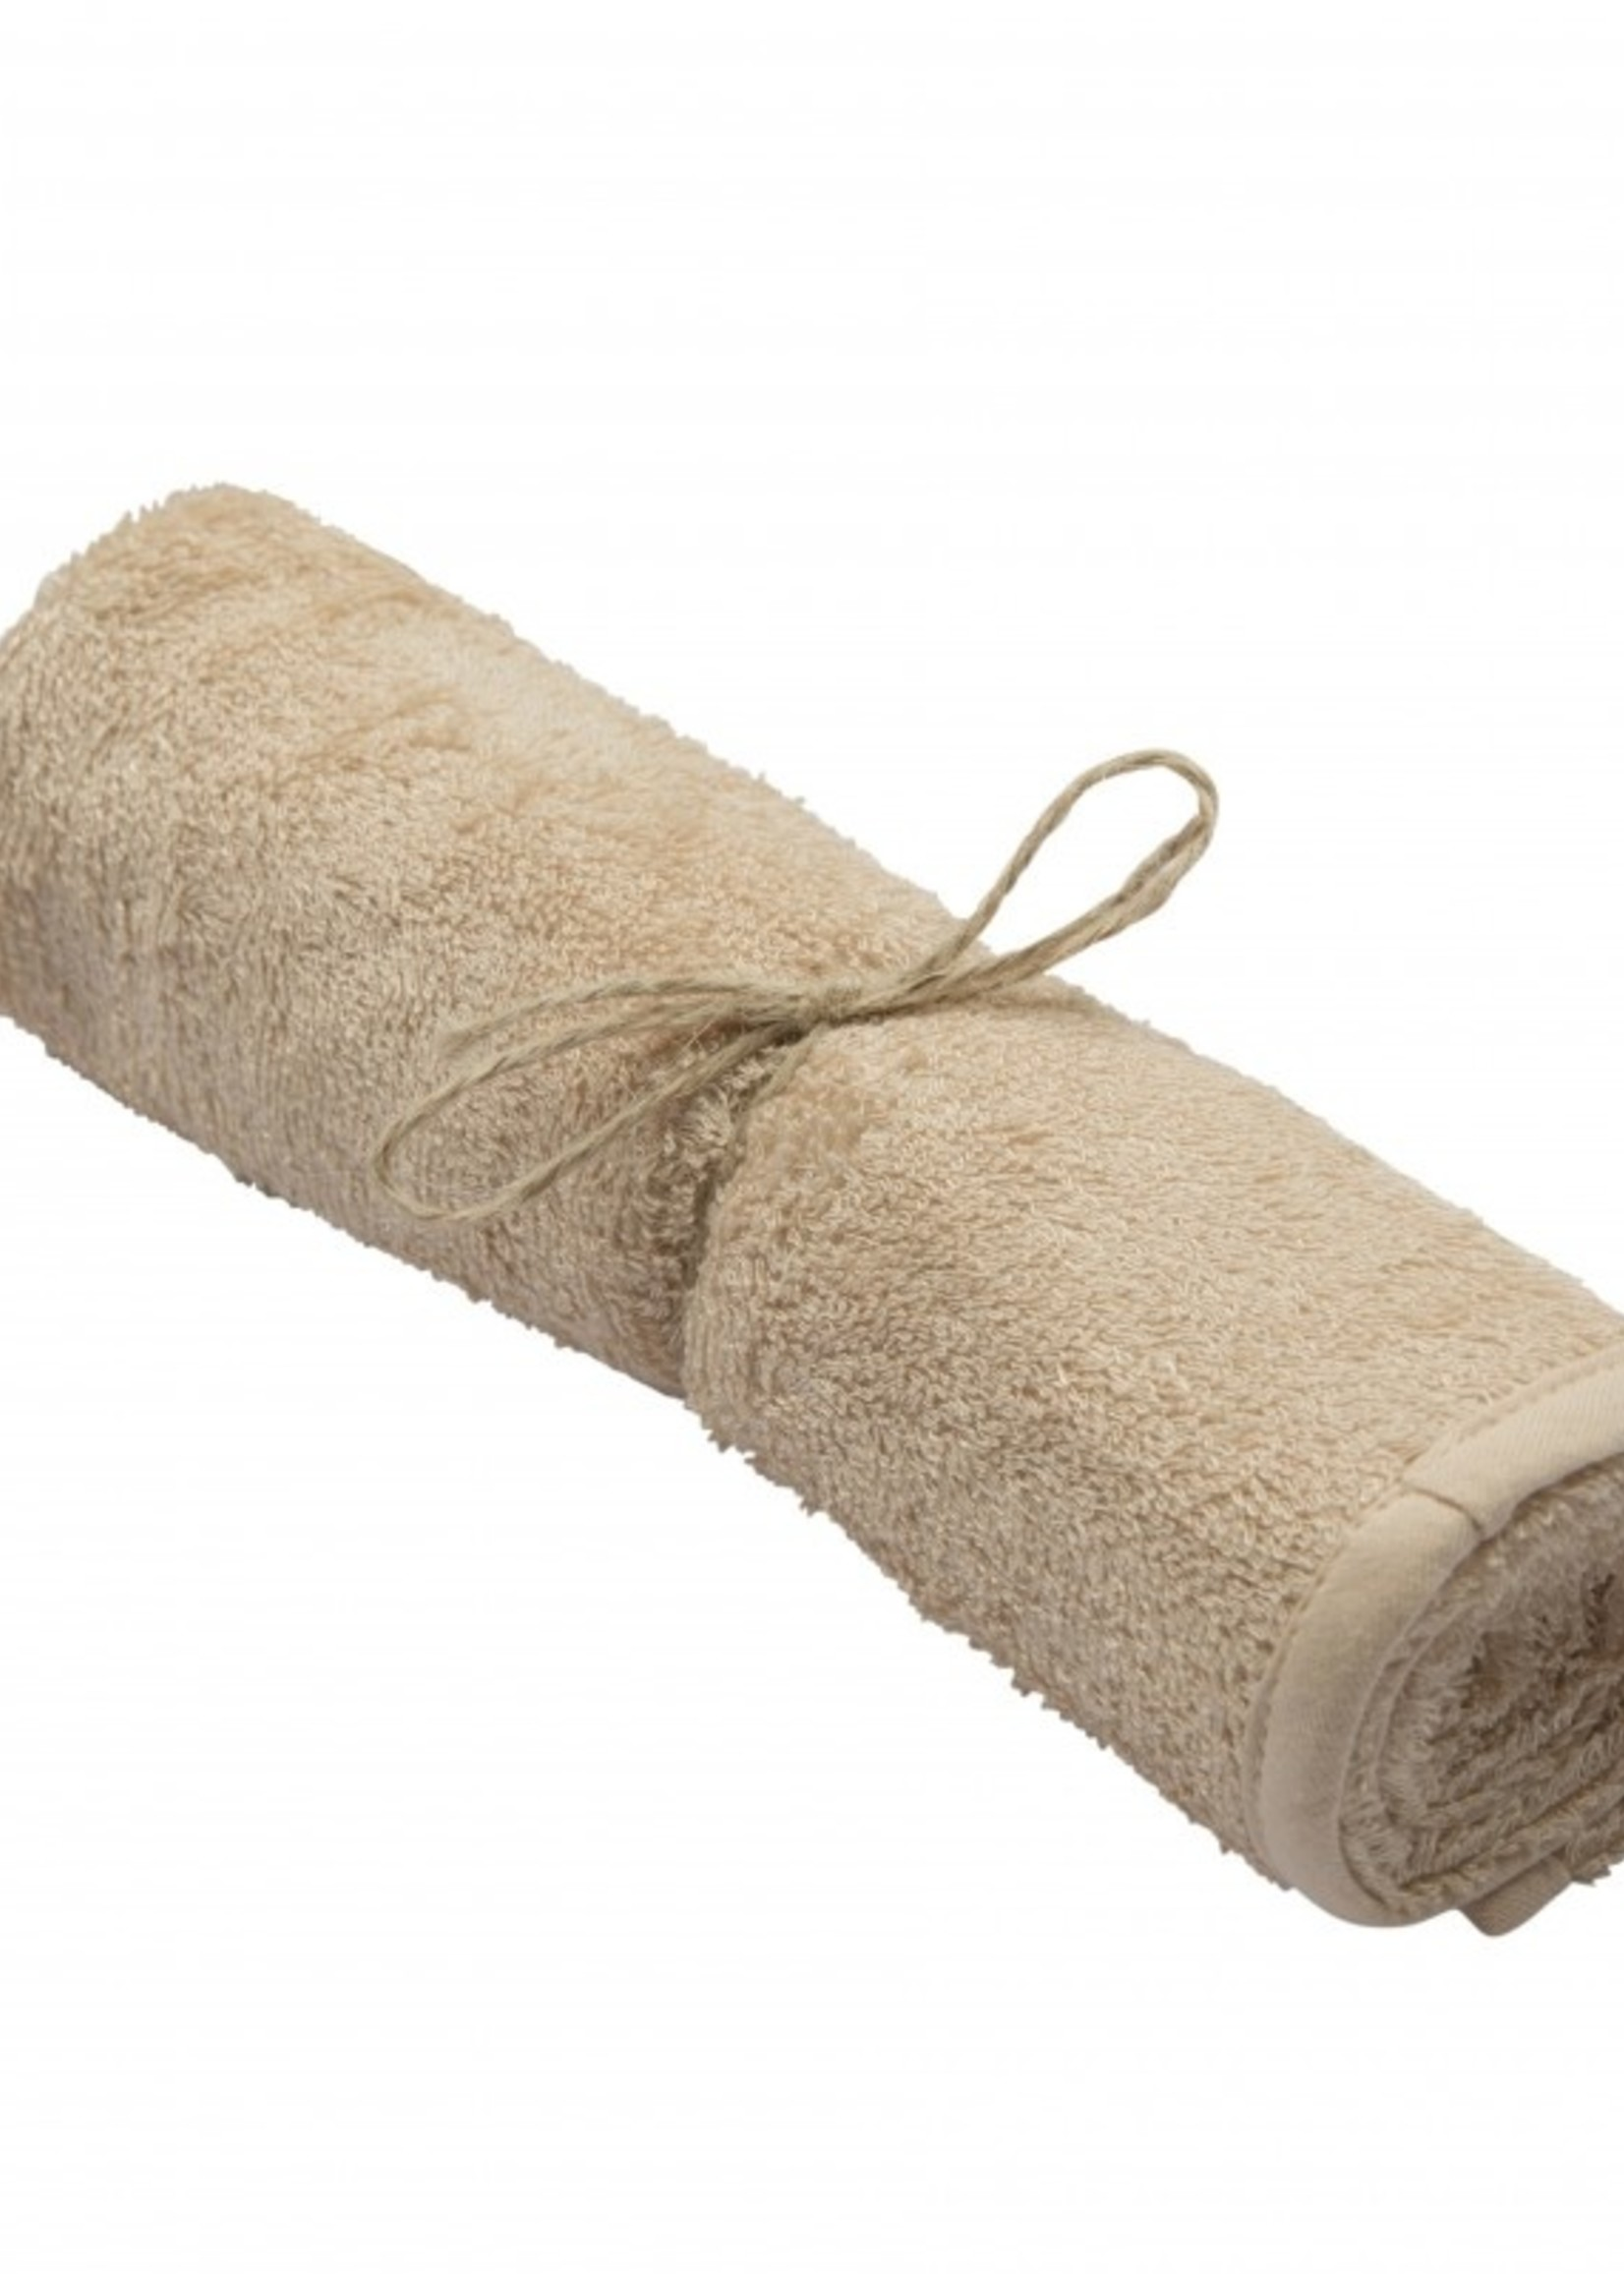 Timboo Towel 50x74 cm Frosted Almond